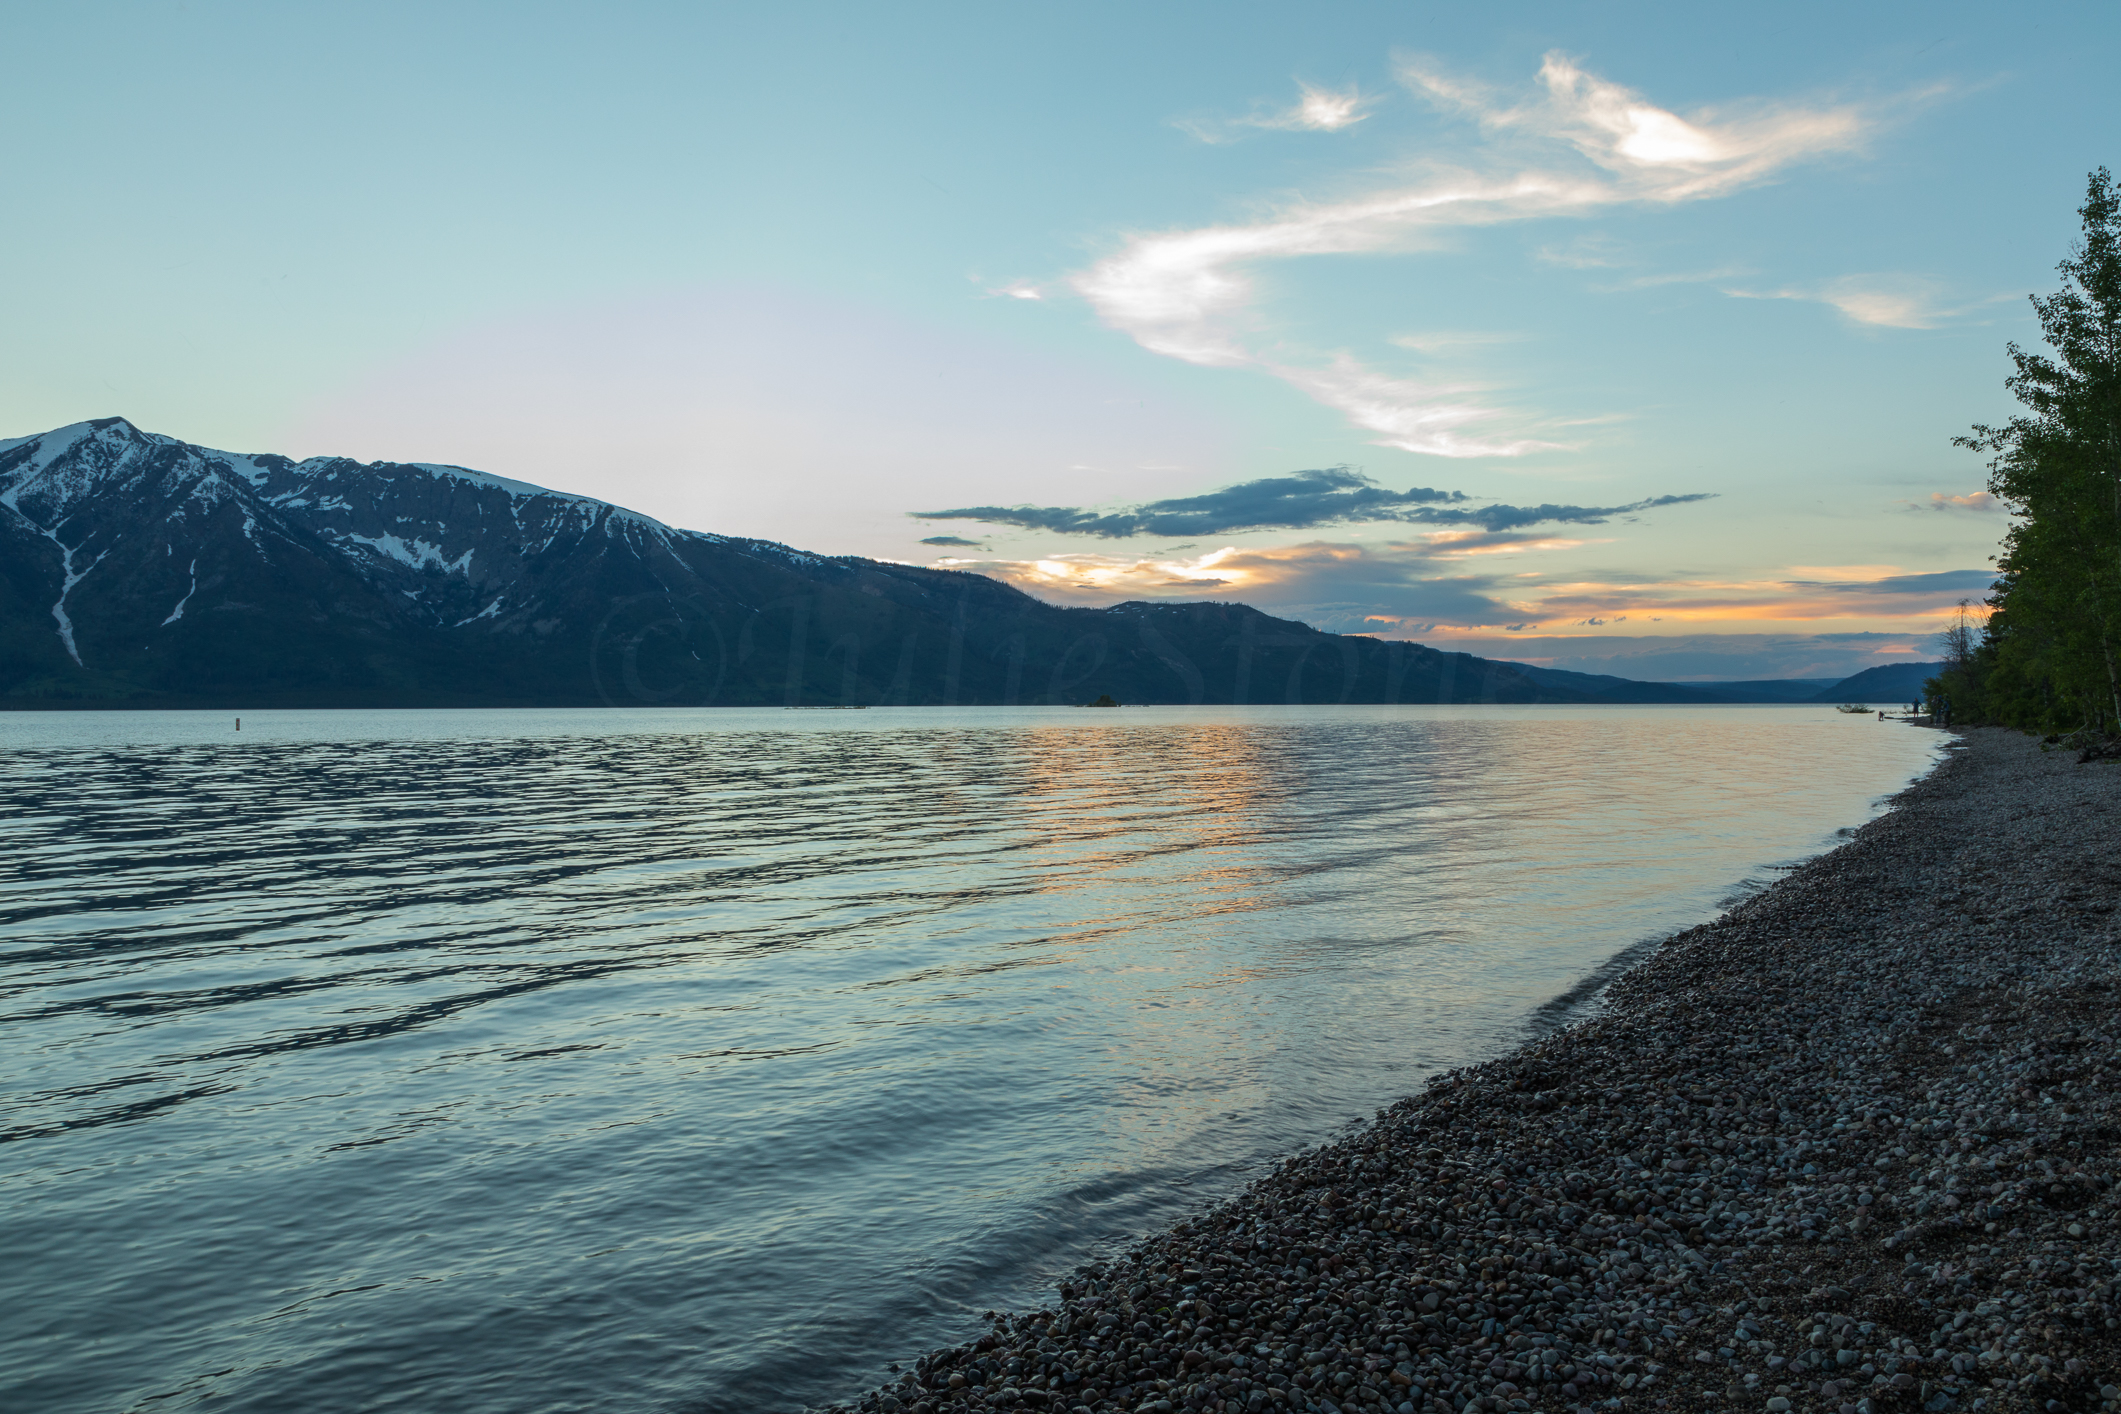 Colter Bay, Image # 3856